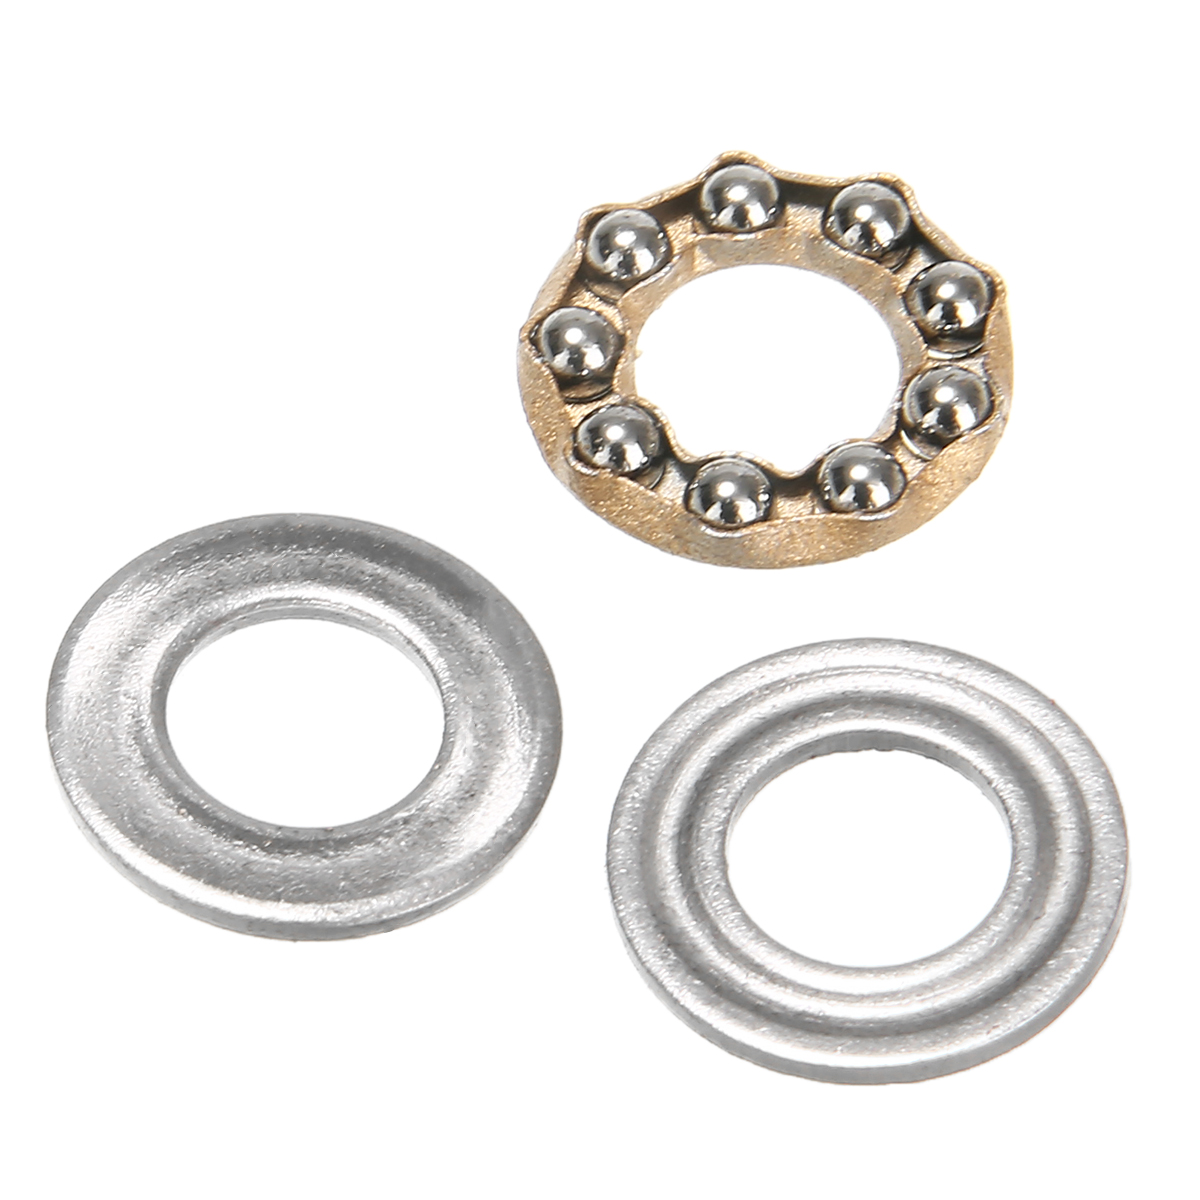 10x Dia Bearing Balls High Quality  Stainless Steel Precision 2-16mm